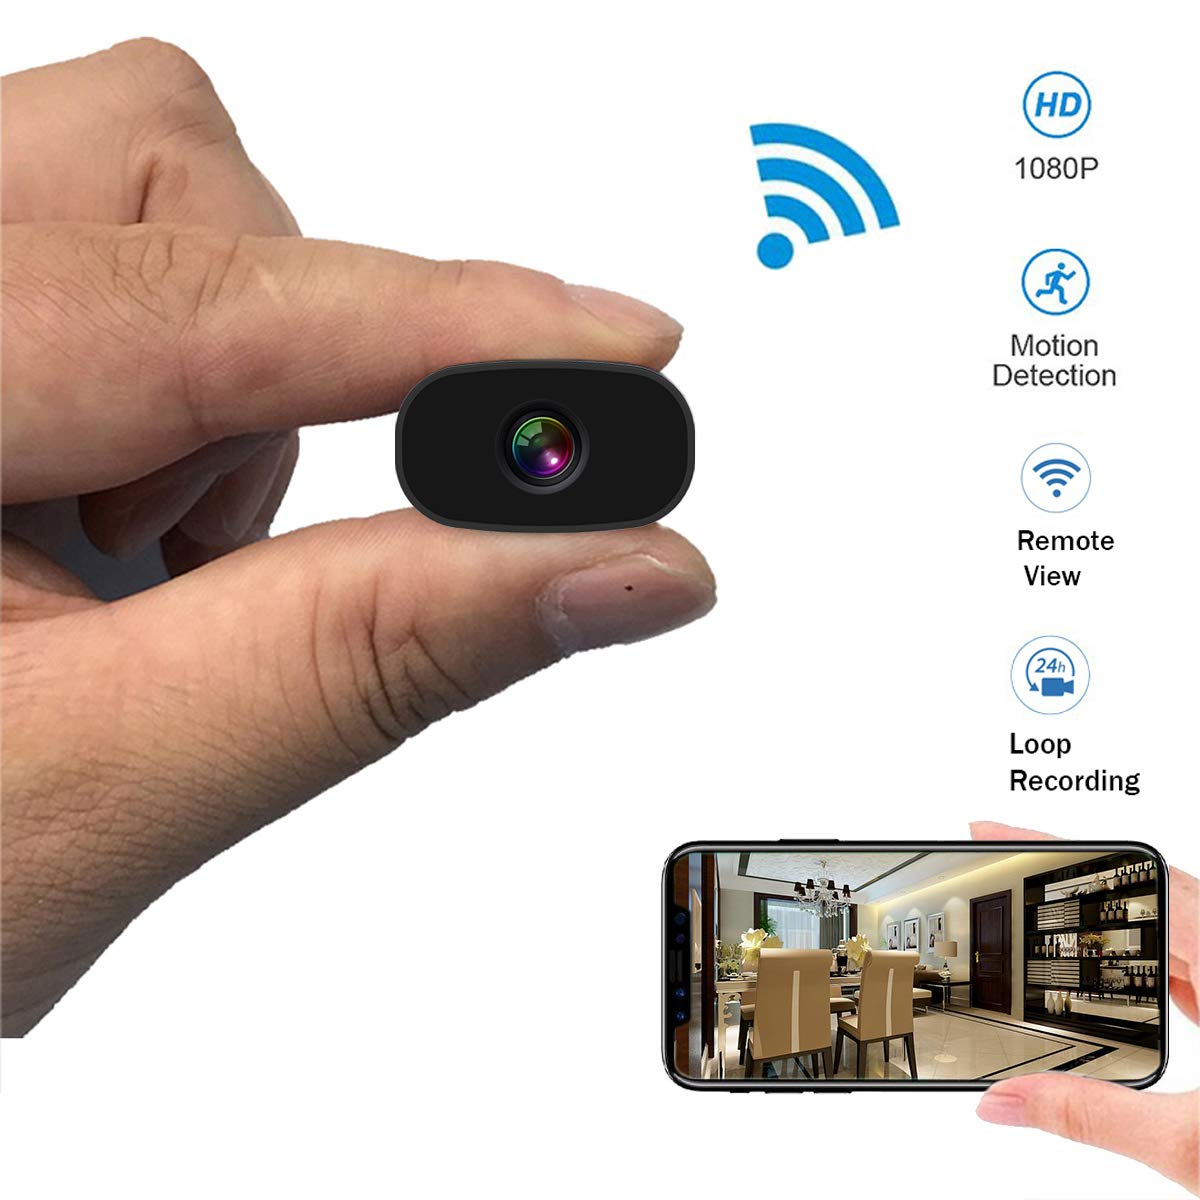 Mini Hidden Cameras PNZEO W3 Spy Cam Portable Wireless WiFi Remote View Camera Small Home Security Cameras Indoor Outdoor Video Record Smart Motion Detection